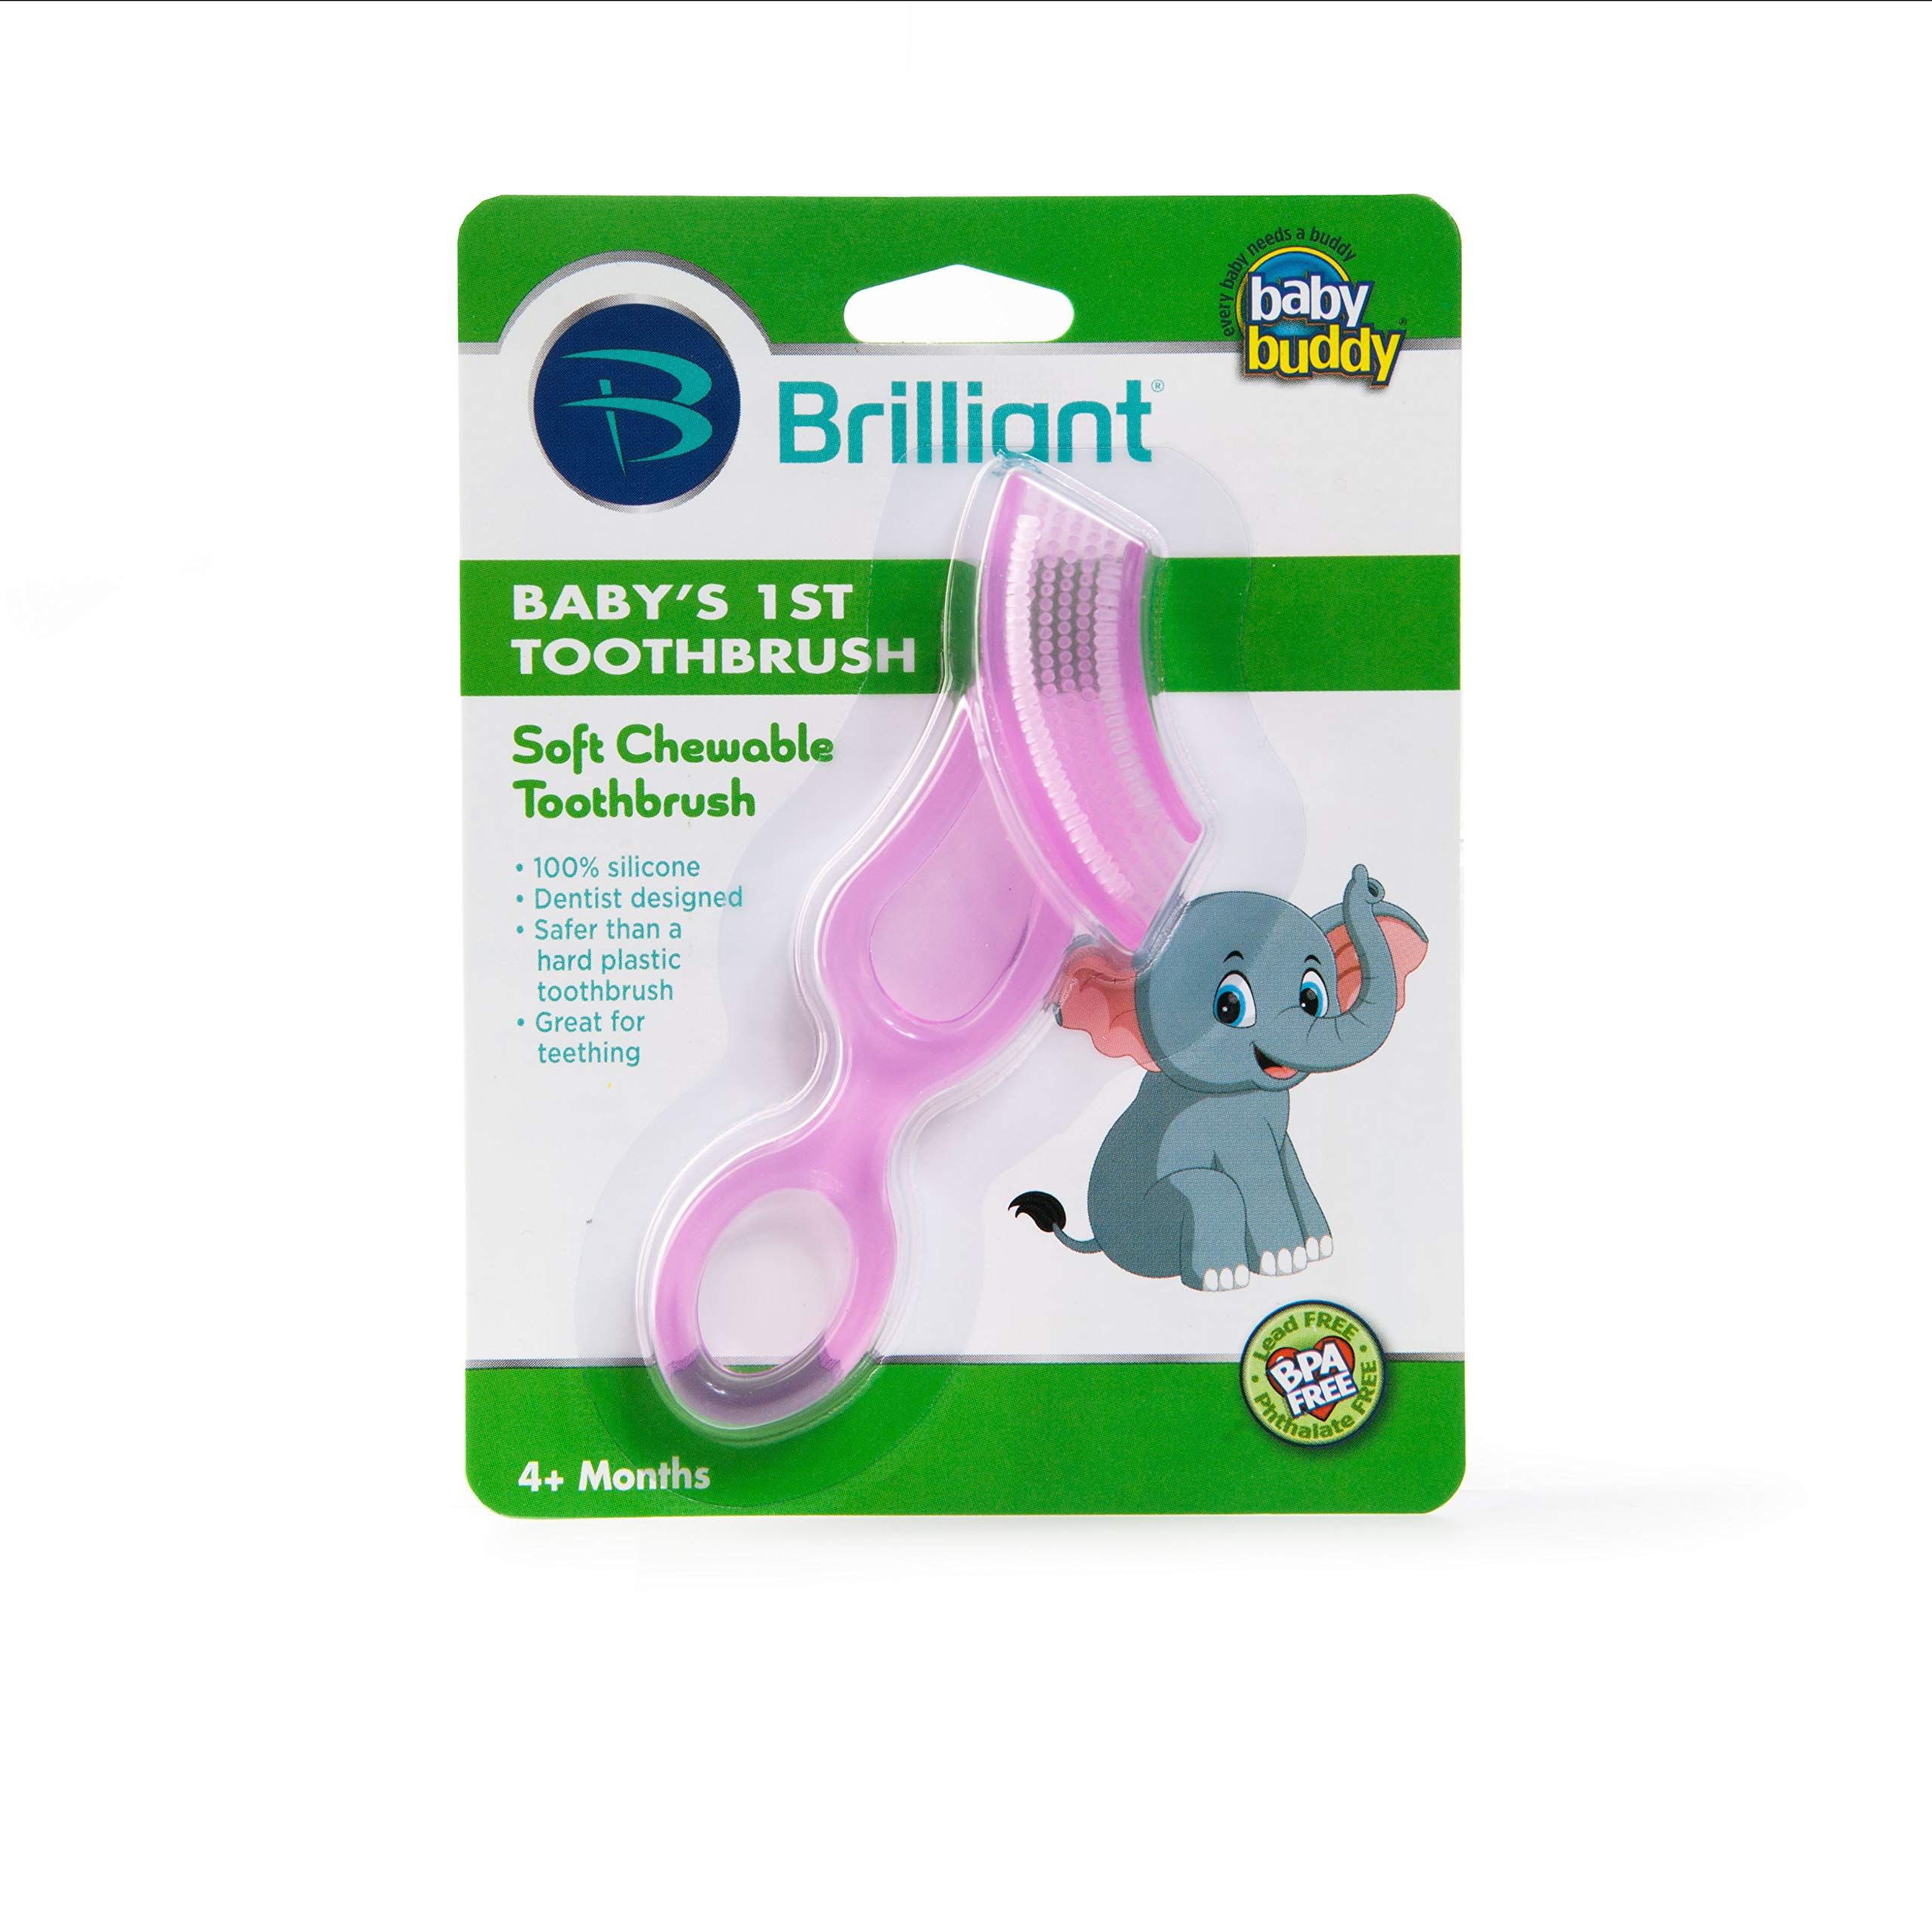 Brush-baby Teether Brush 10 Months Pack Of 6 At Any Cost 3 Years